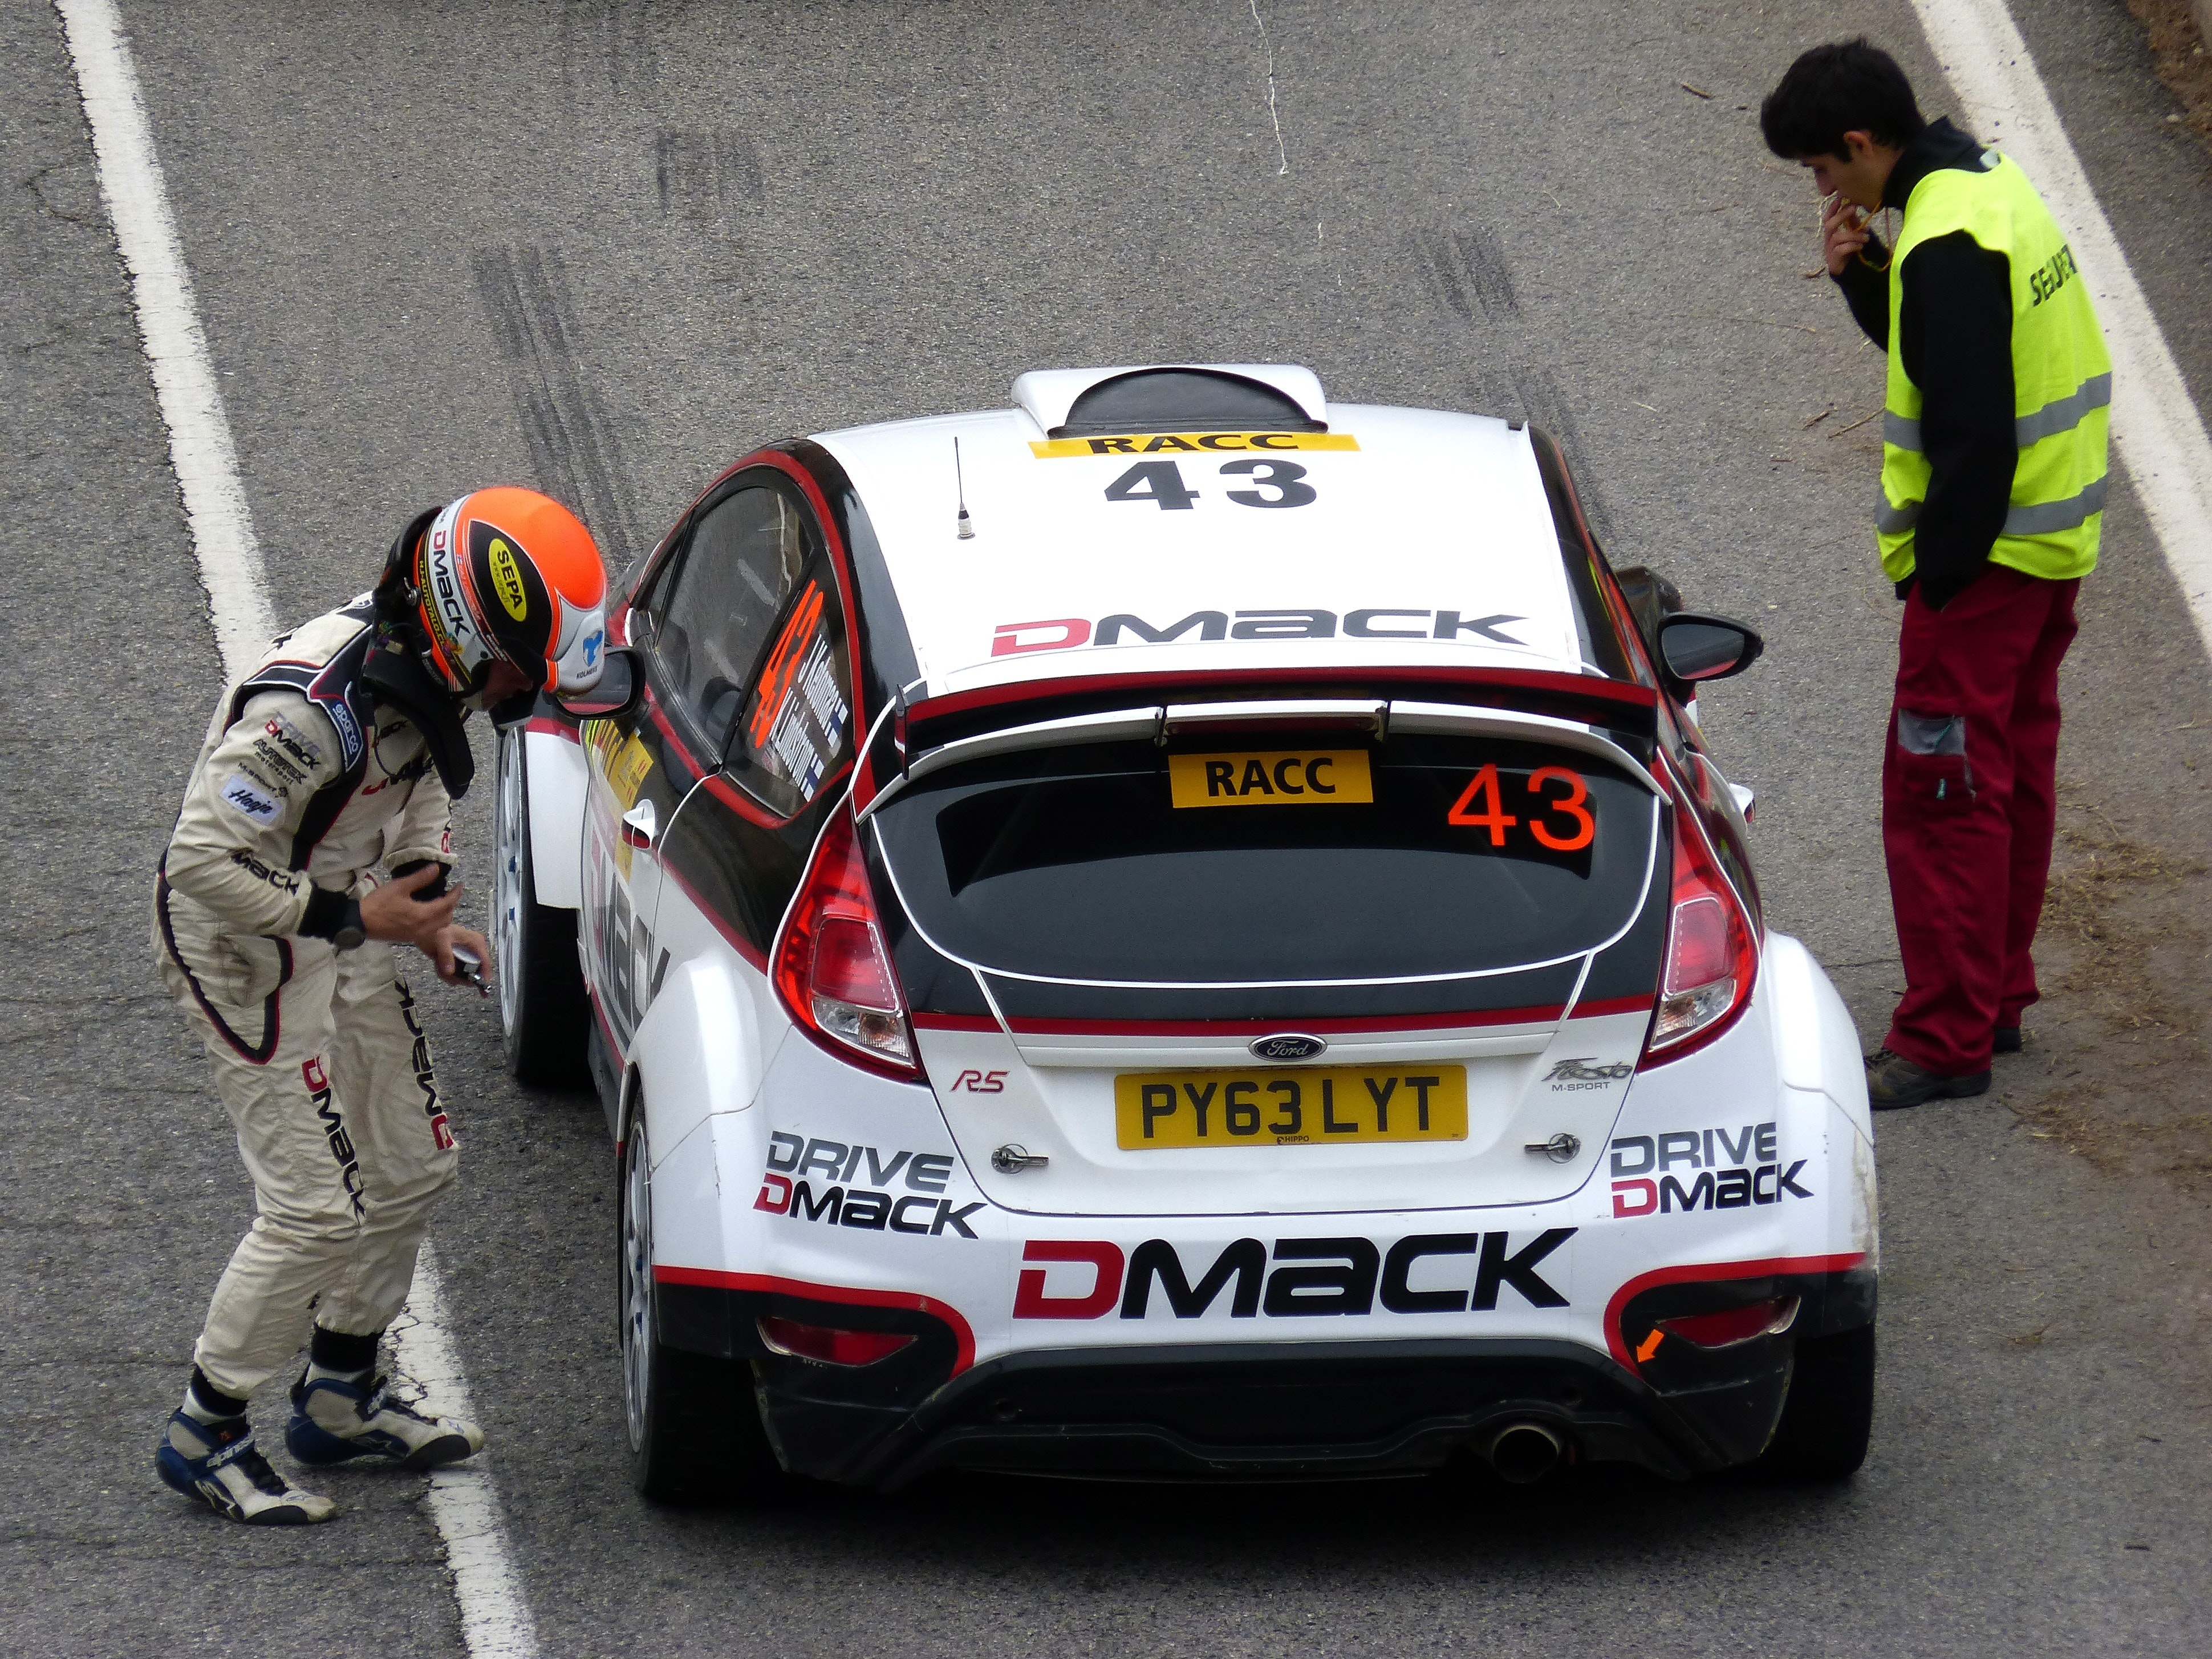 White and Red Dmack Car on Road, Auto racing, Automobile, Car, Competition, HQ Photo